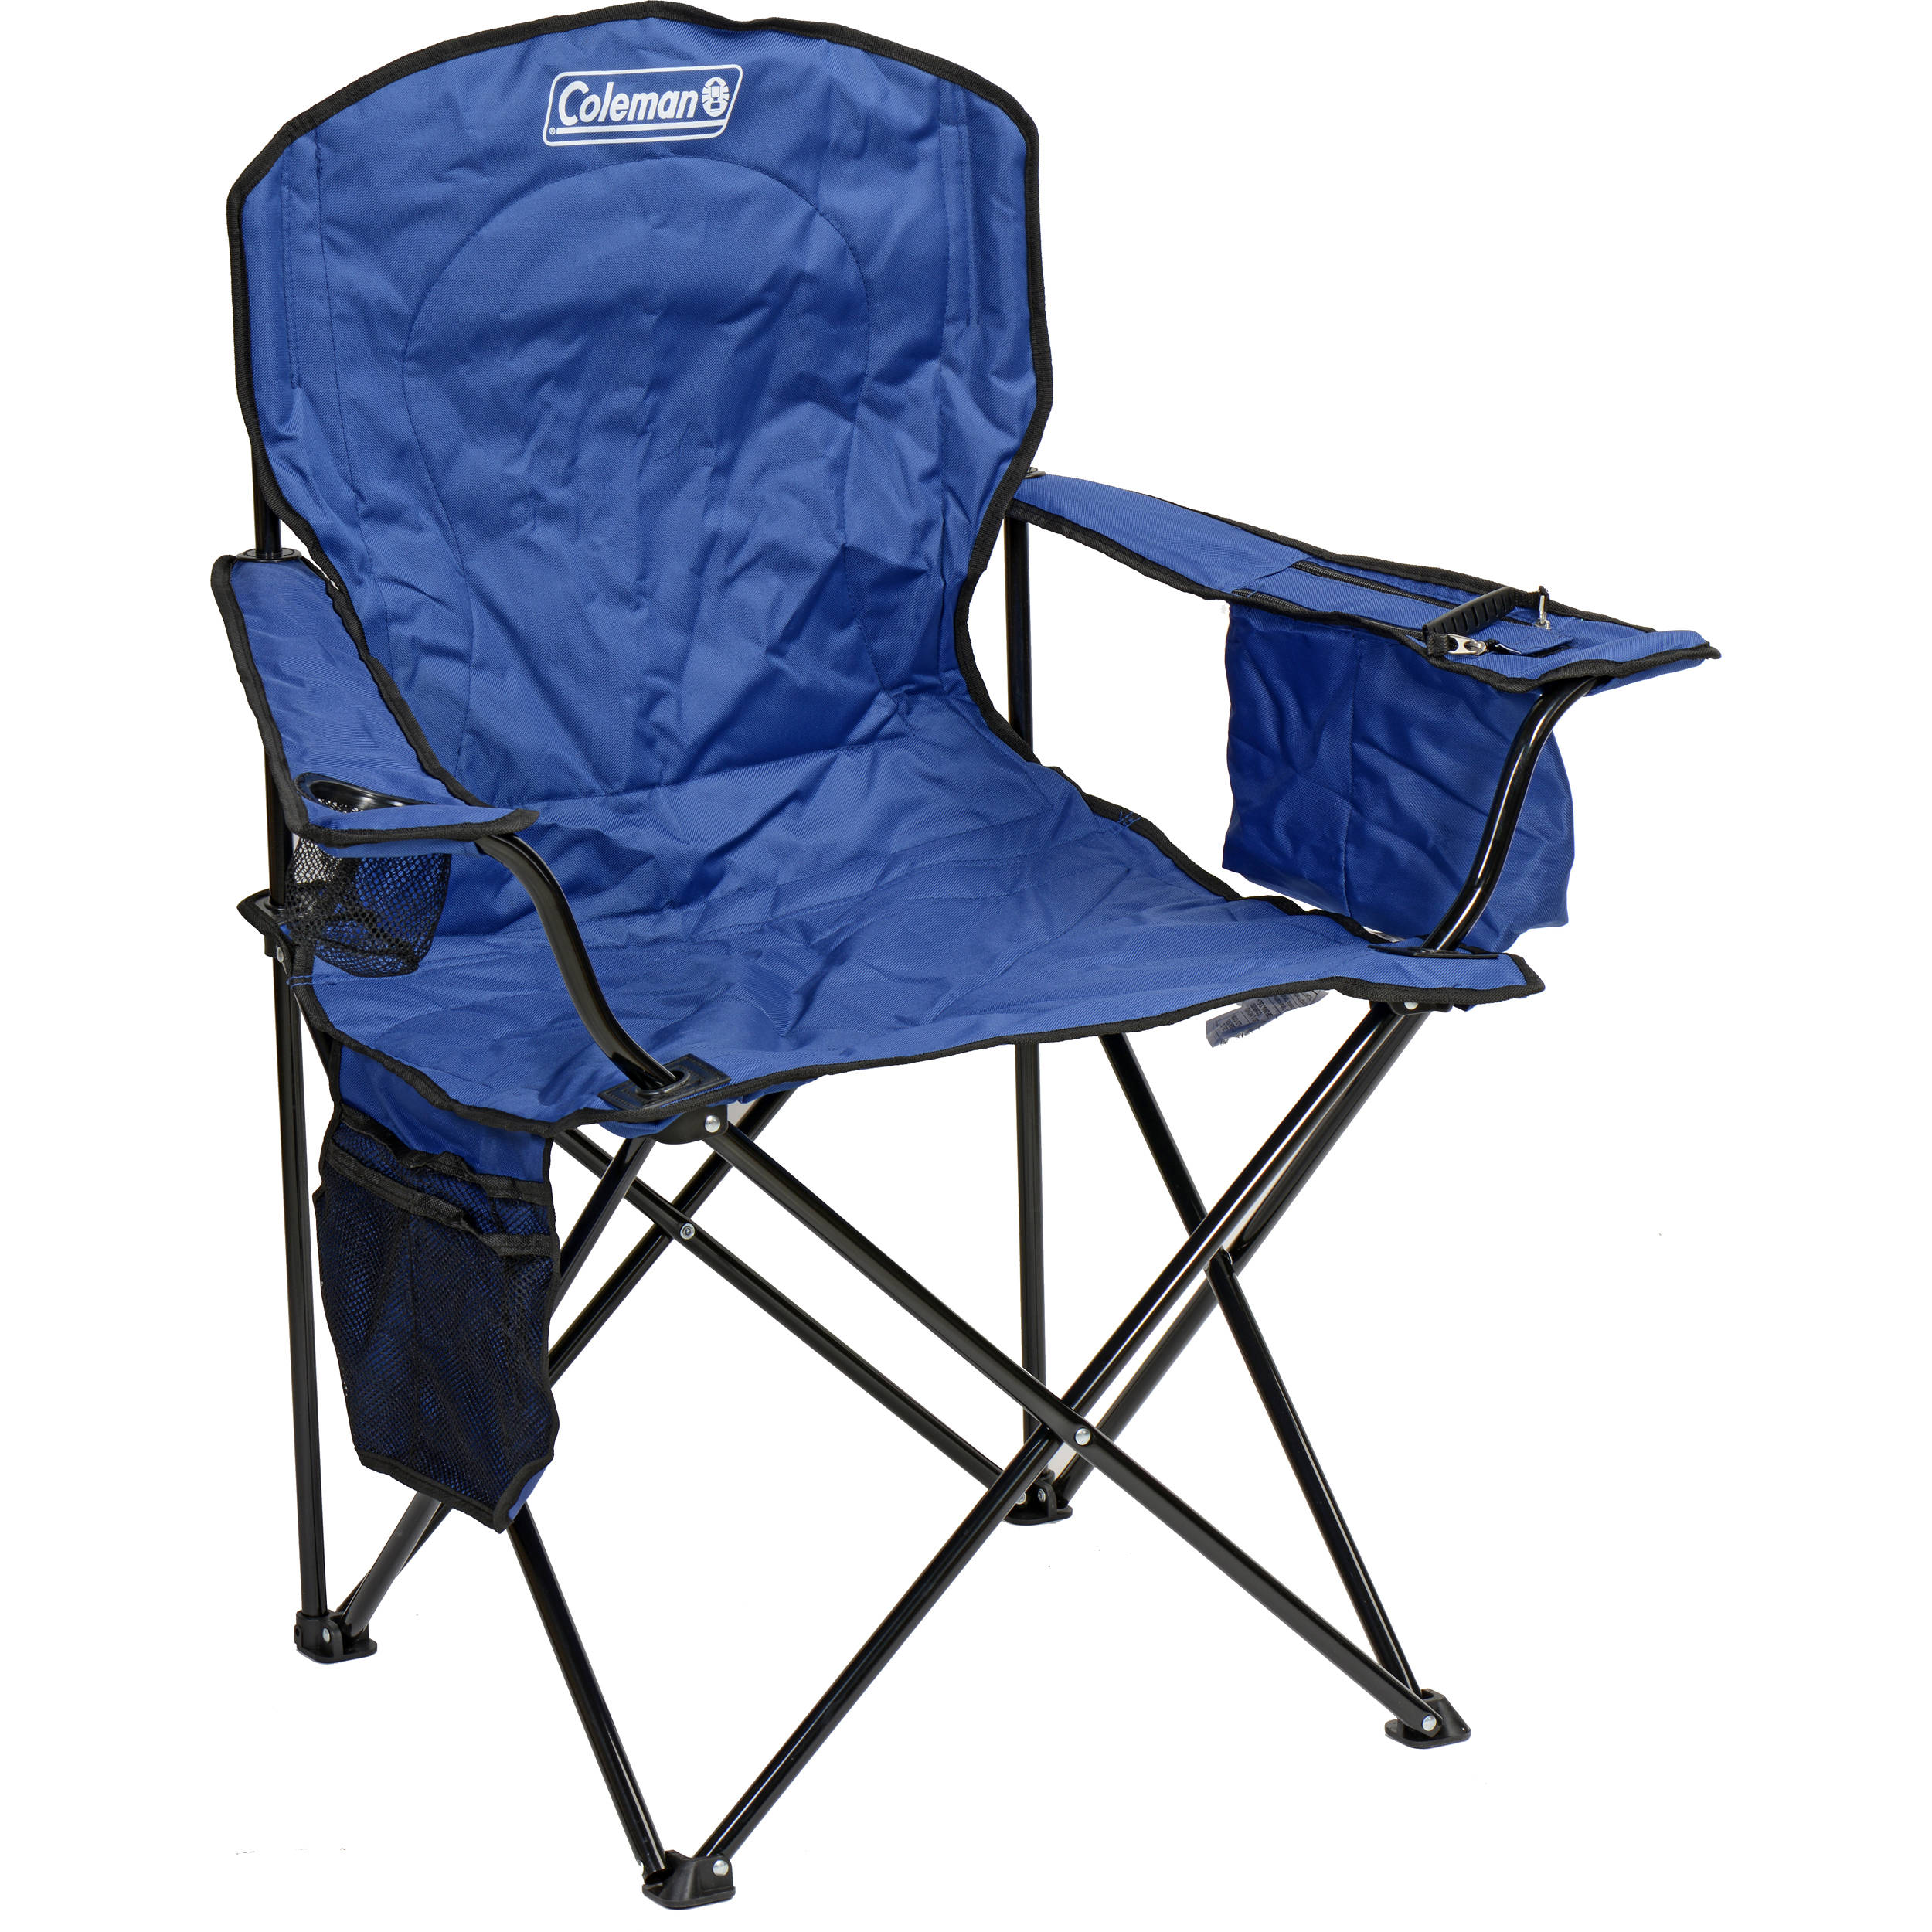 coleman oversized quad chair with cooler (blue) 2000020266 b&h